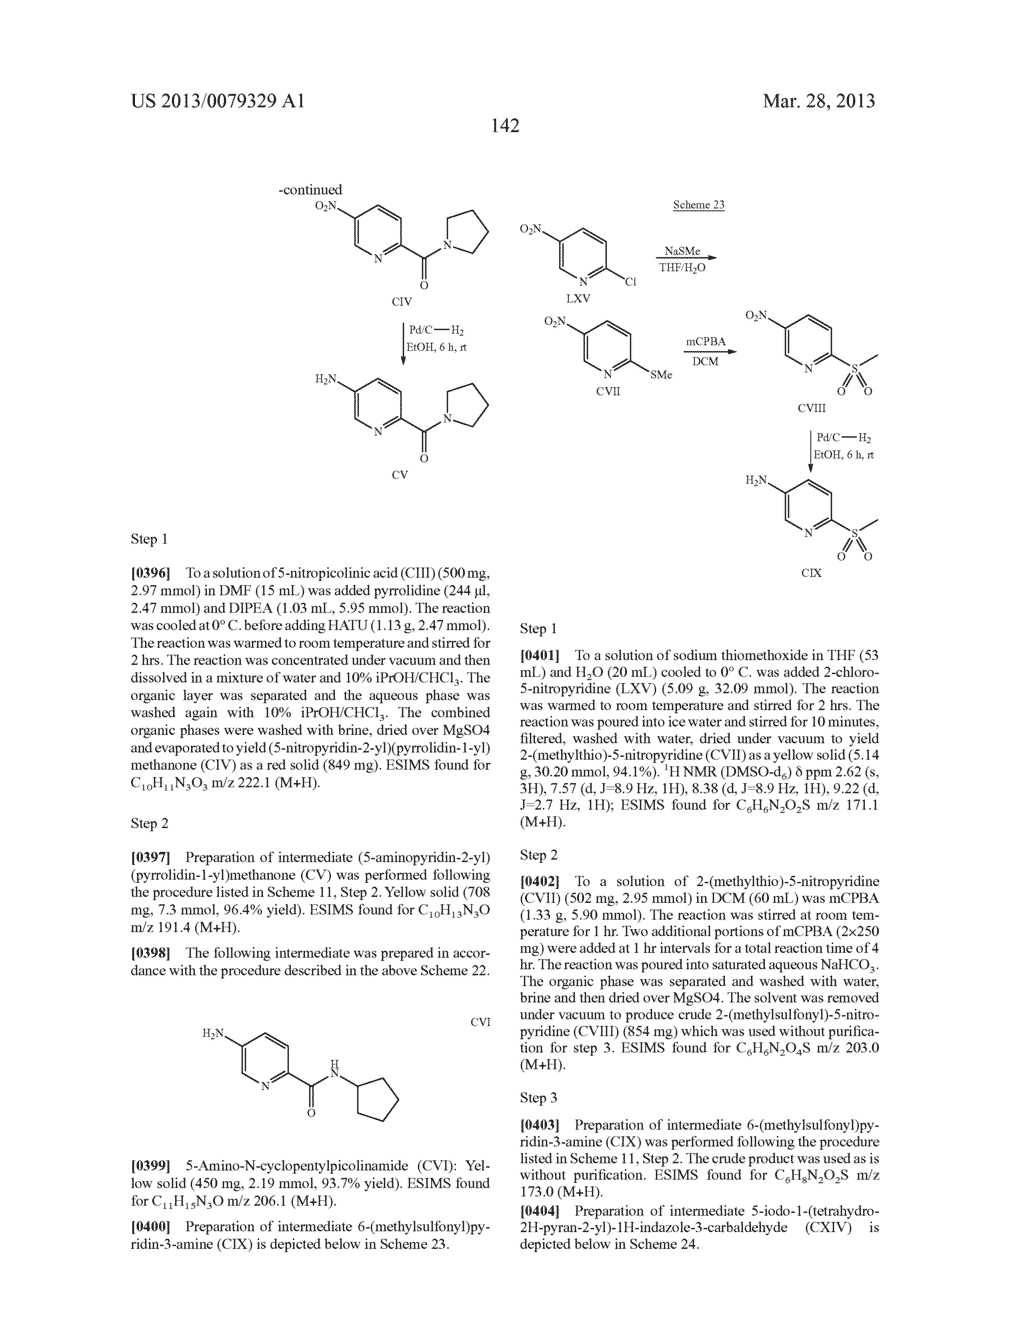 INDAZOLE-3-CARBOXAMIDES AND THEIR USE AS WNT/Beta-CATENIN SIGNALING     PATHWAY INHIBITORS - diagram, schematic, and image 143